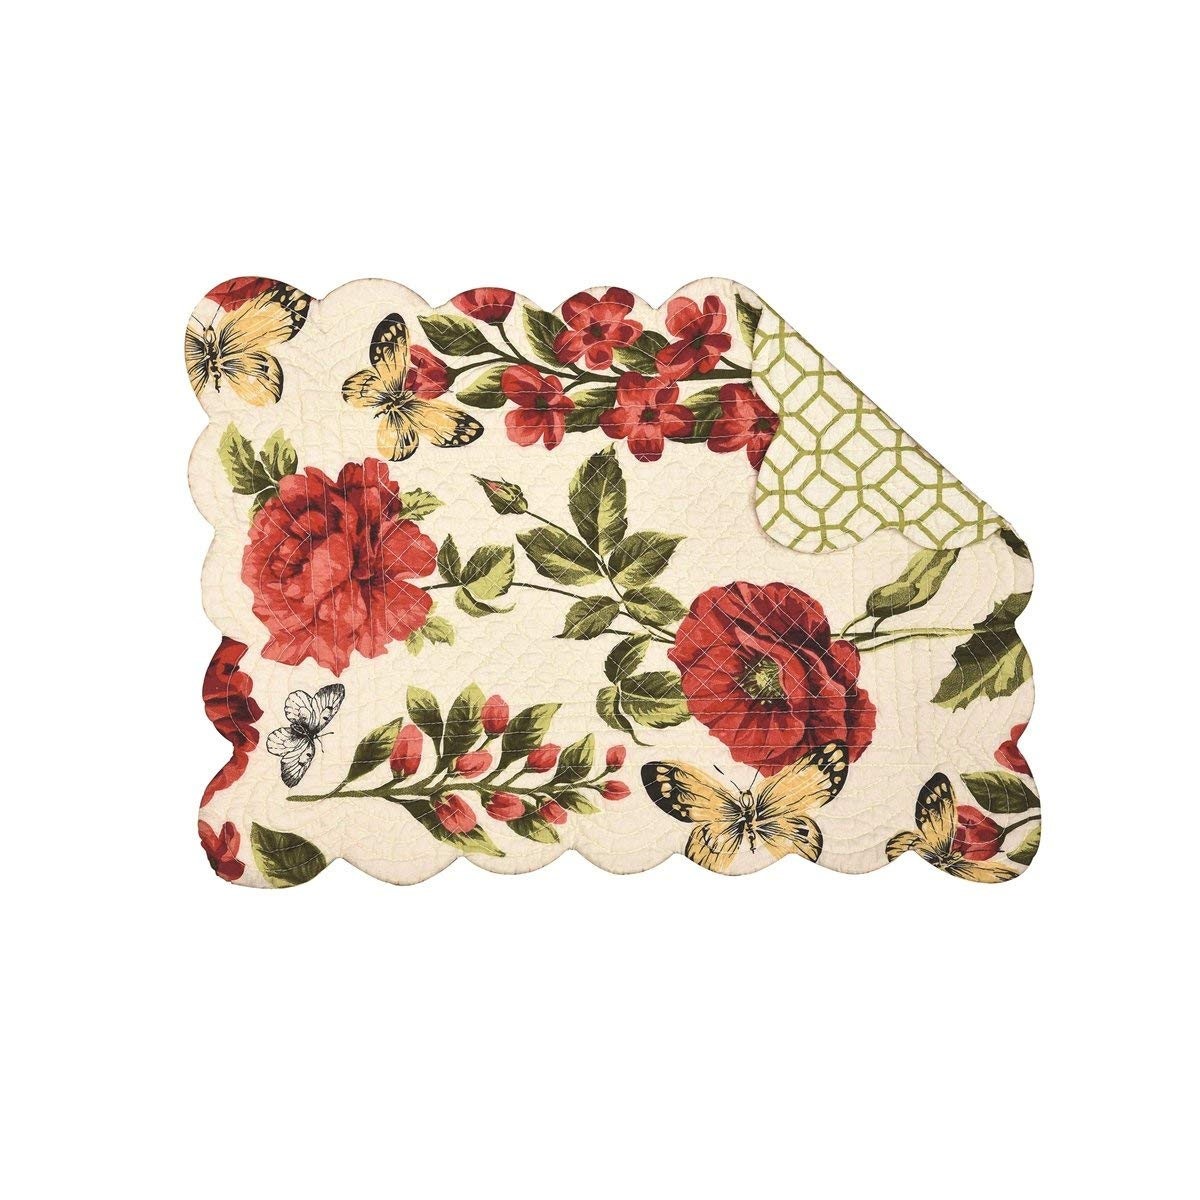 C&F Home Set of 4 Pcs, 13x19 Quilted Placemat,Nina